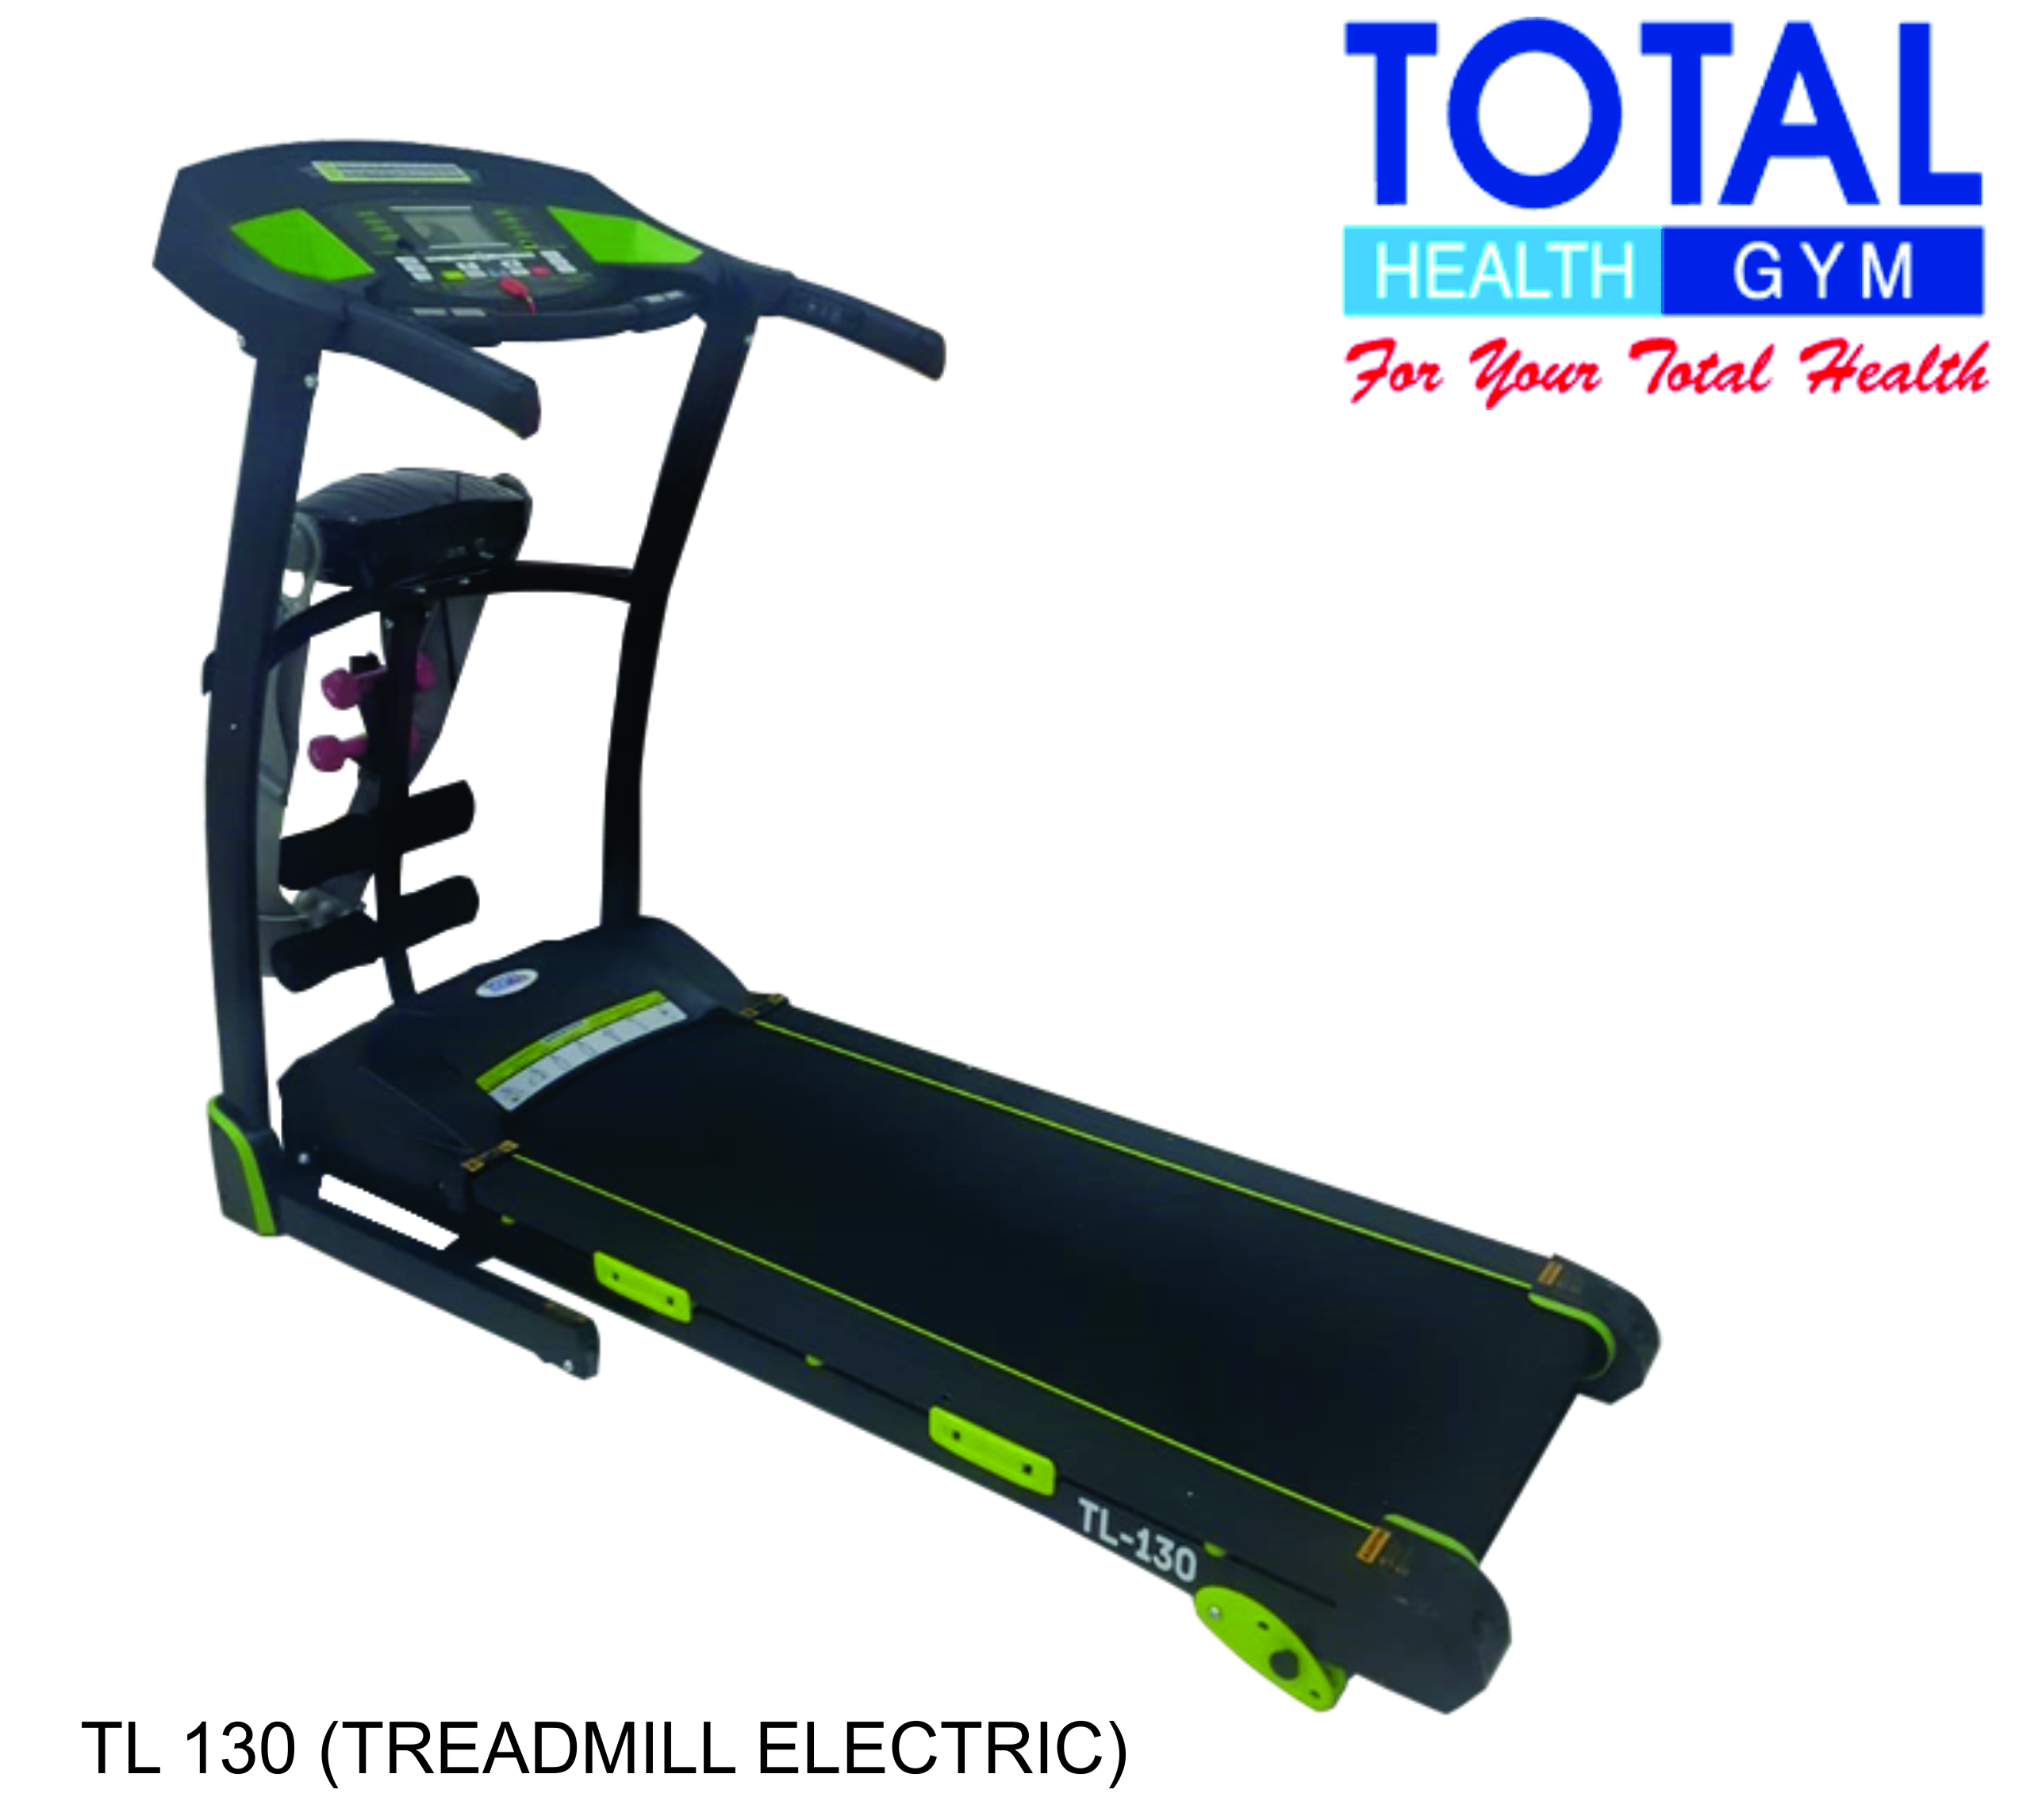 Treadmill Elektrik TL-130 manual incline - Hijau